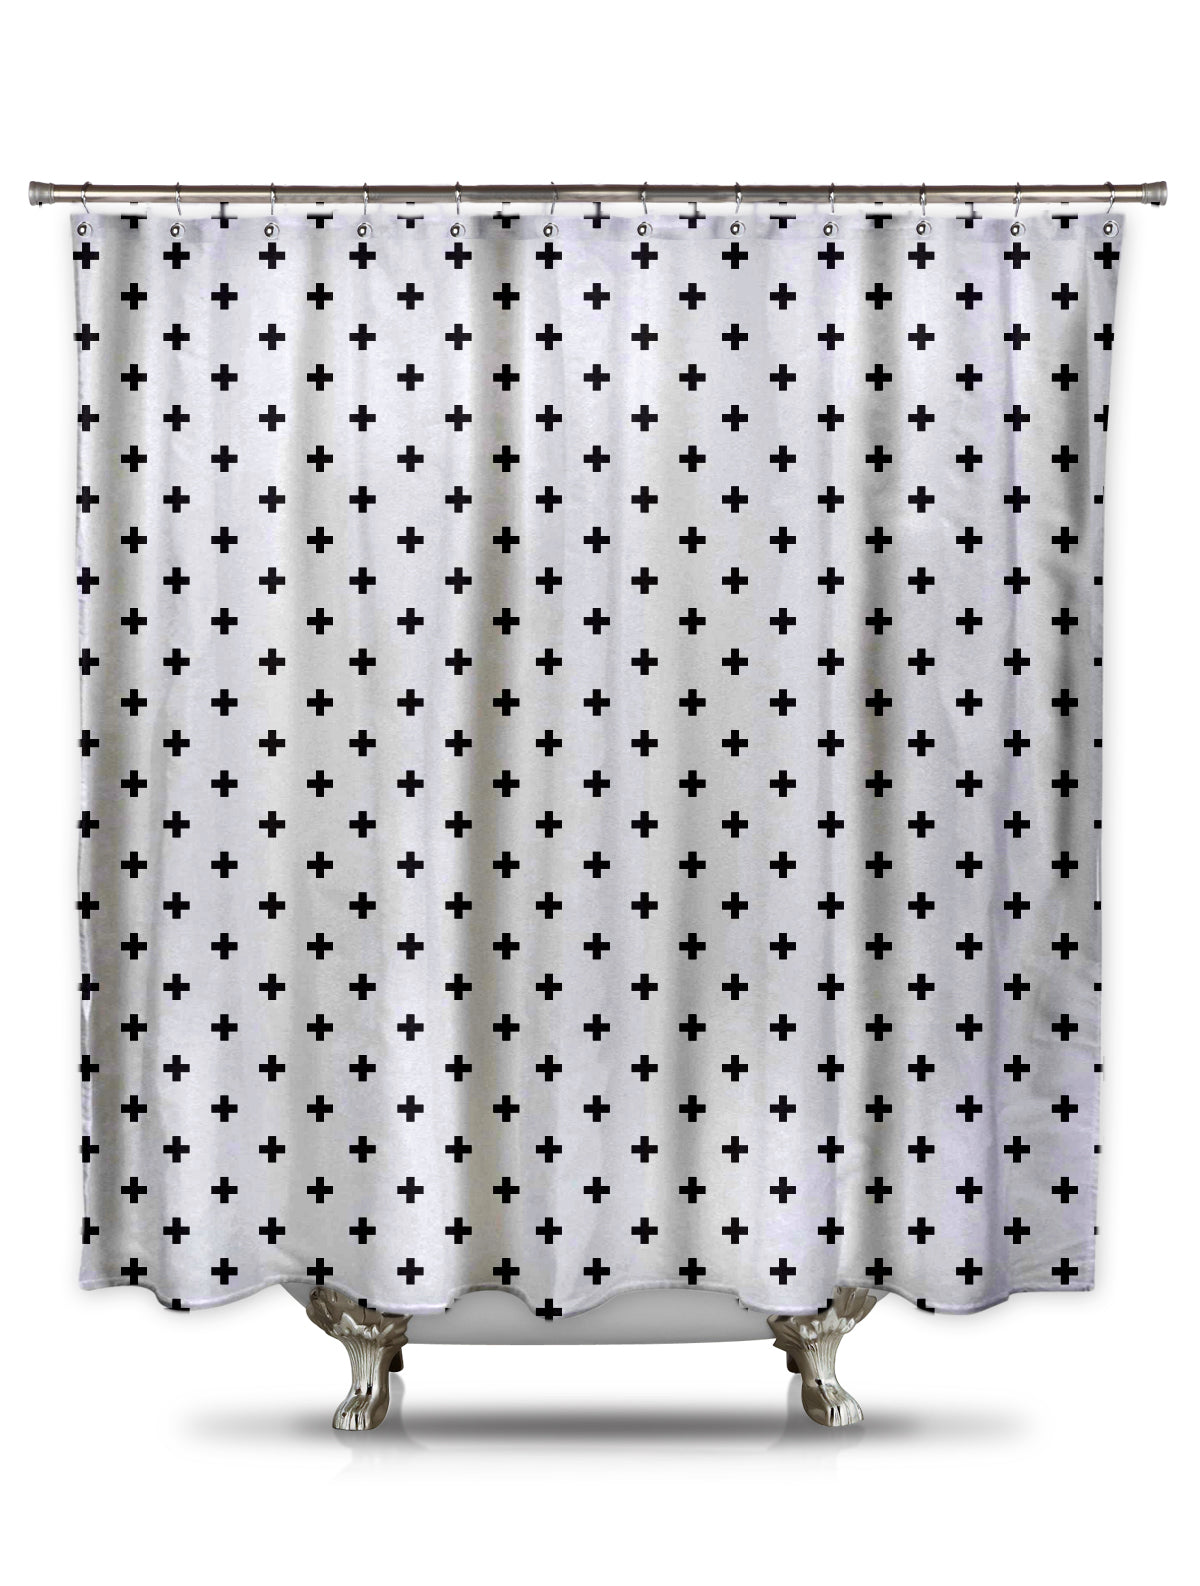 Black Plus Signs Fabric Shower Curtain by Fred DePaoli